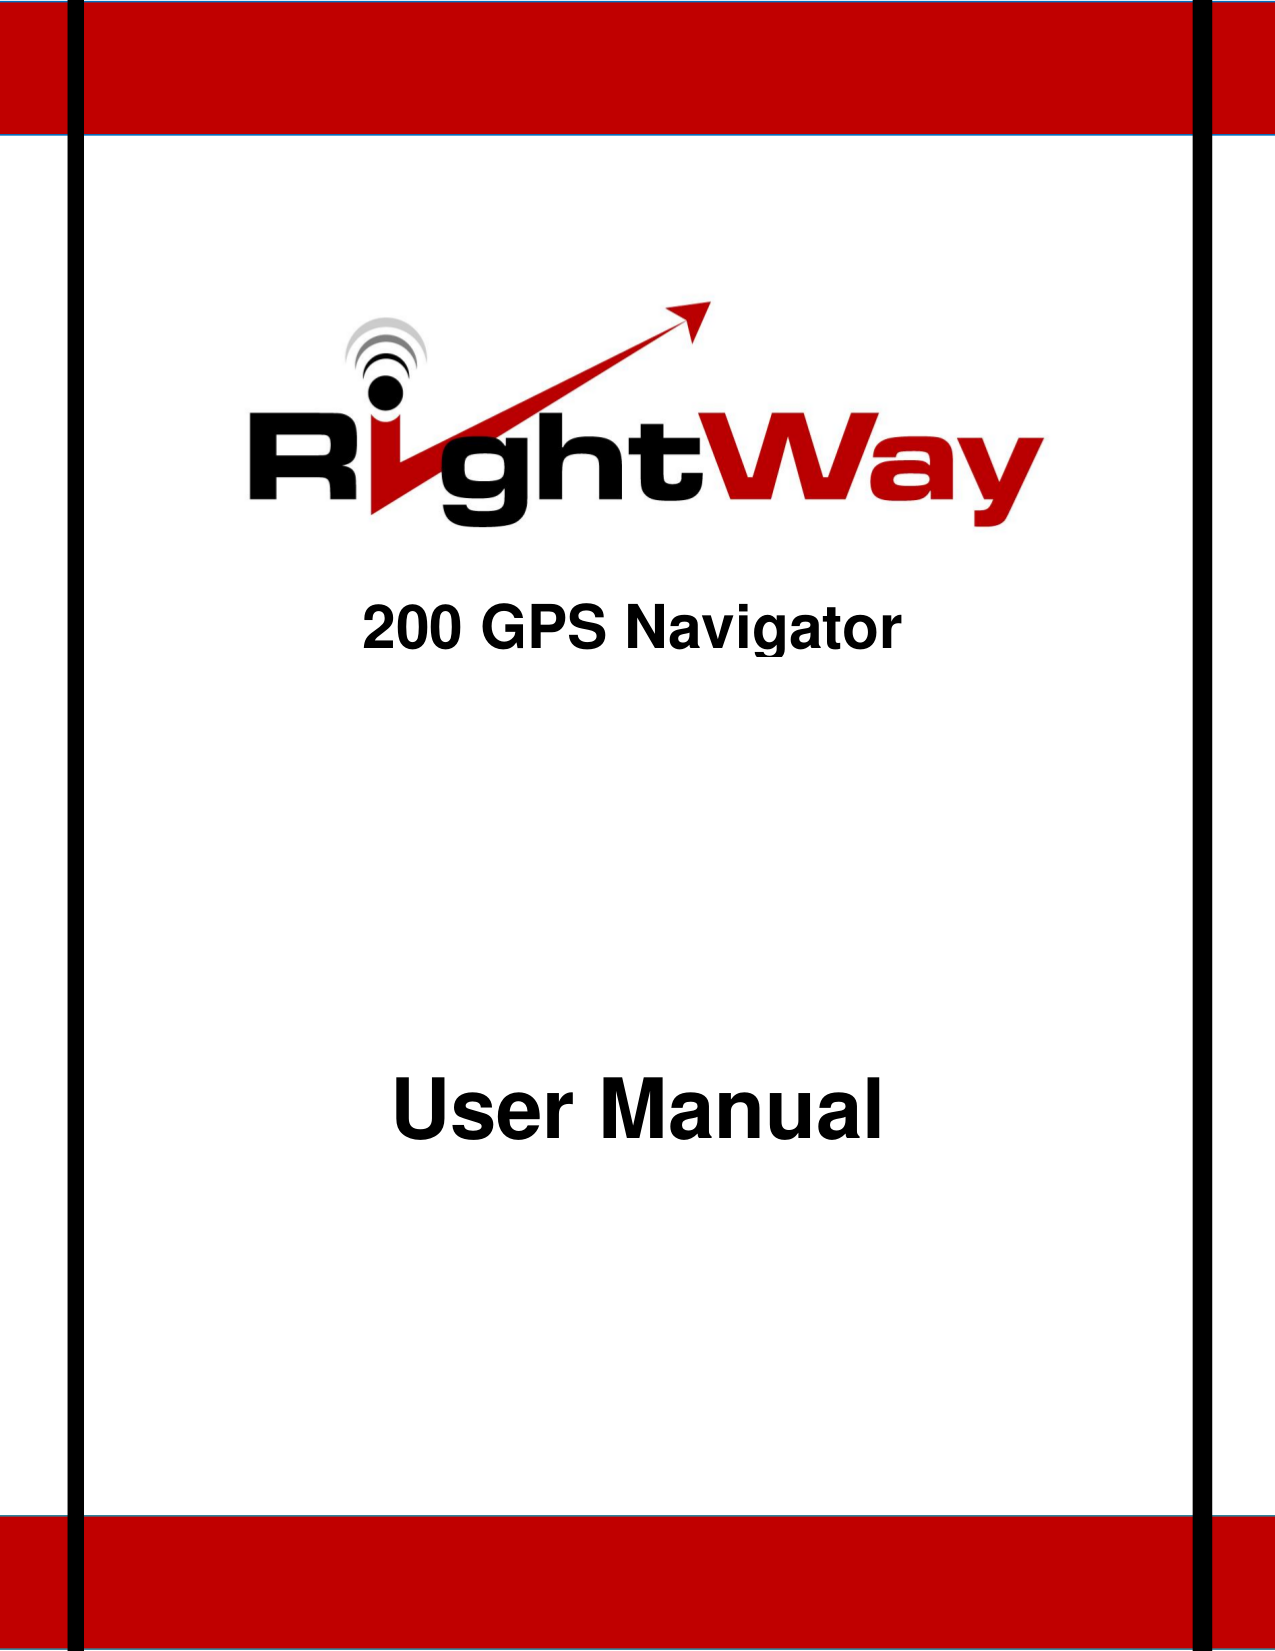 pdf for RightWay GPS RW200 manual